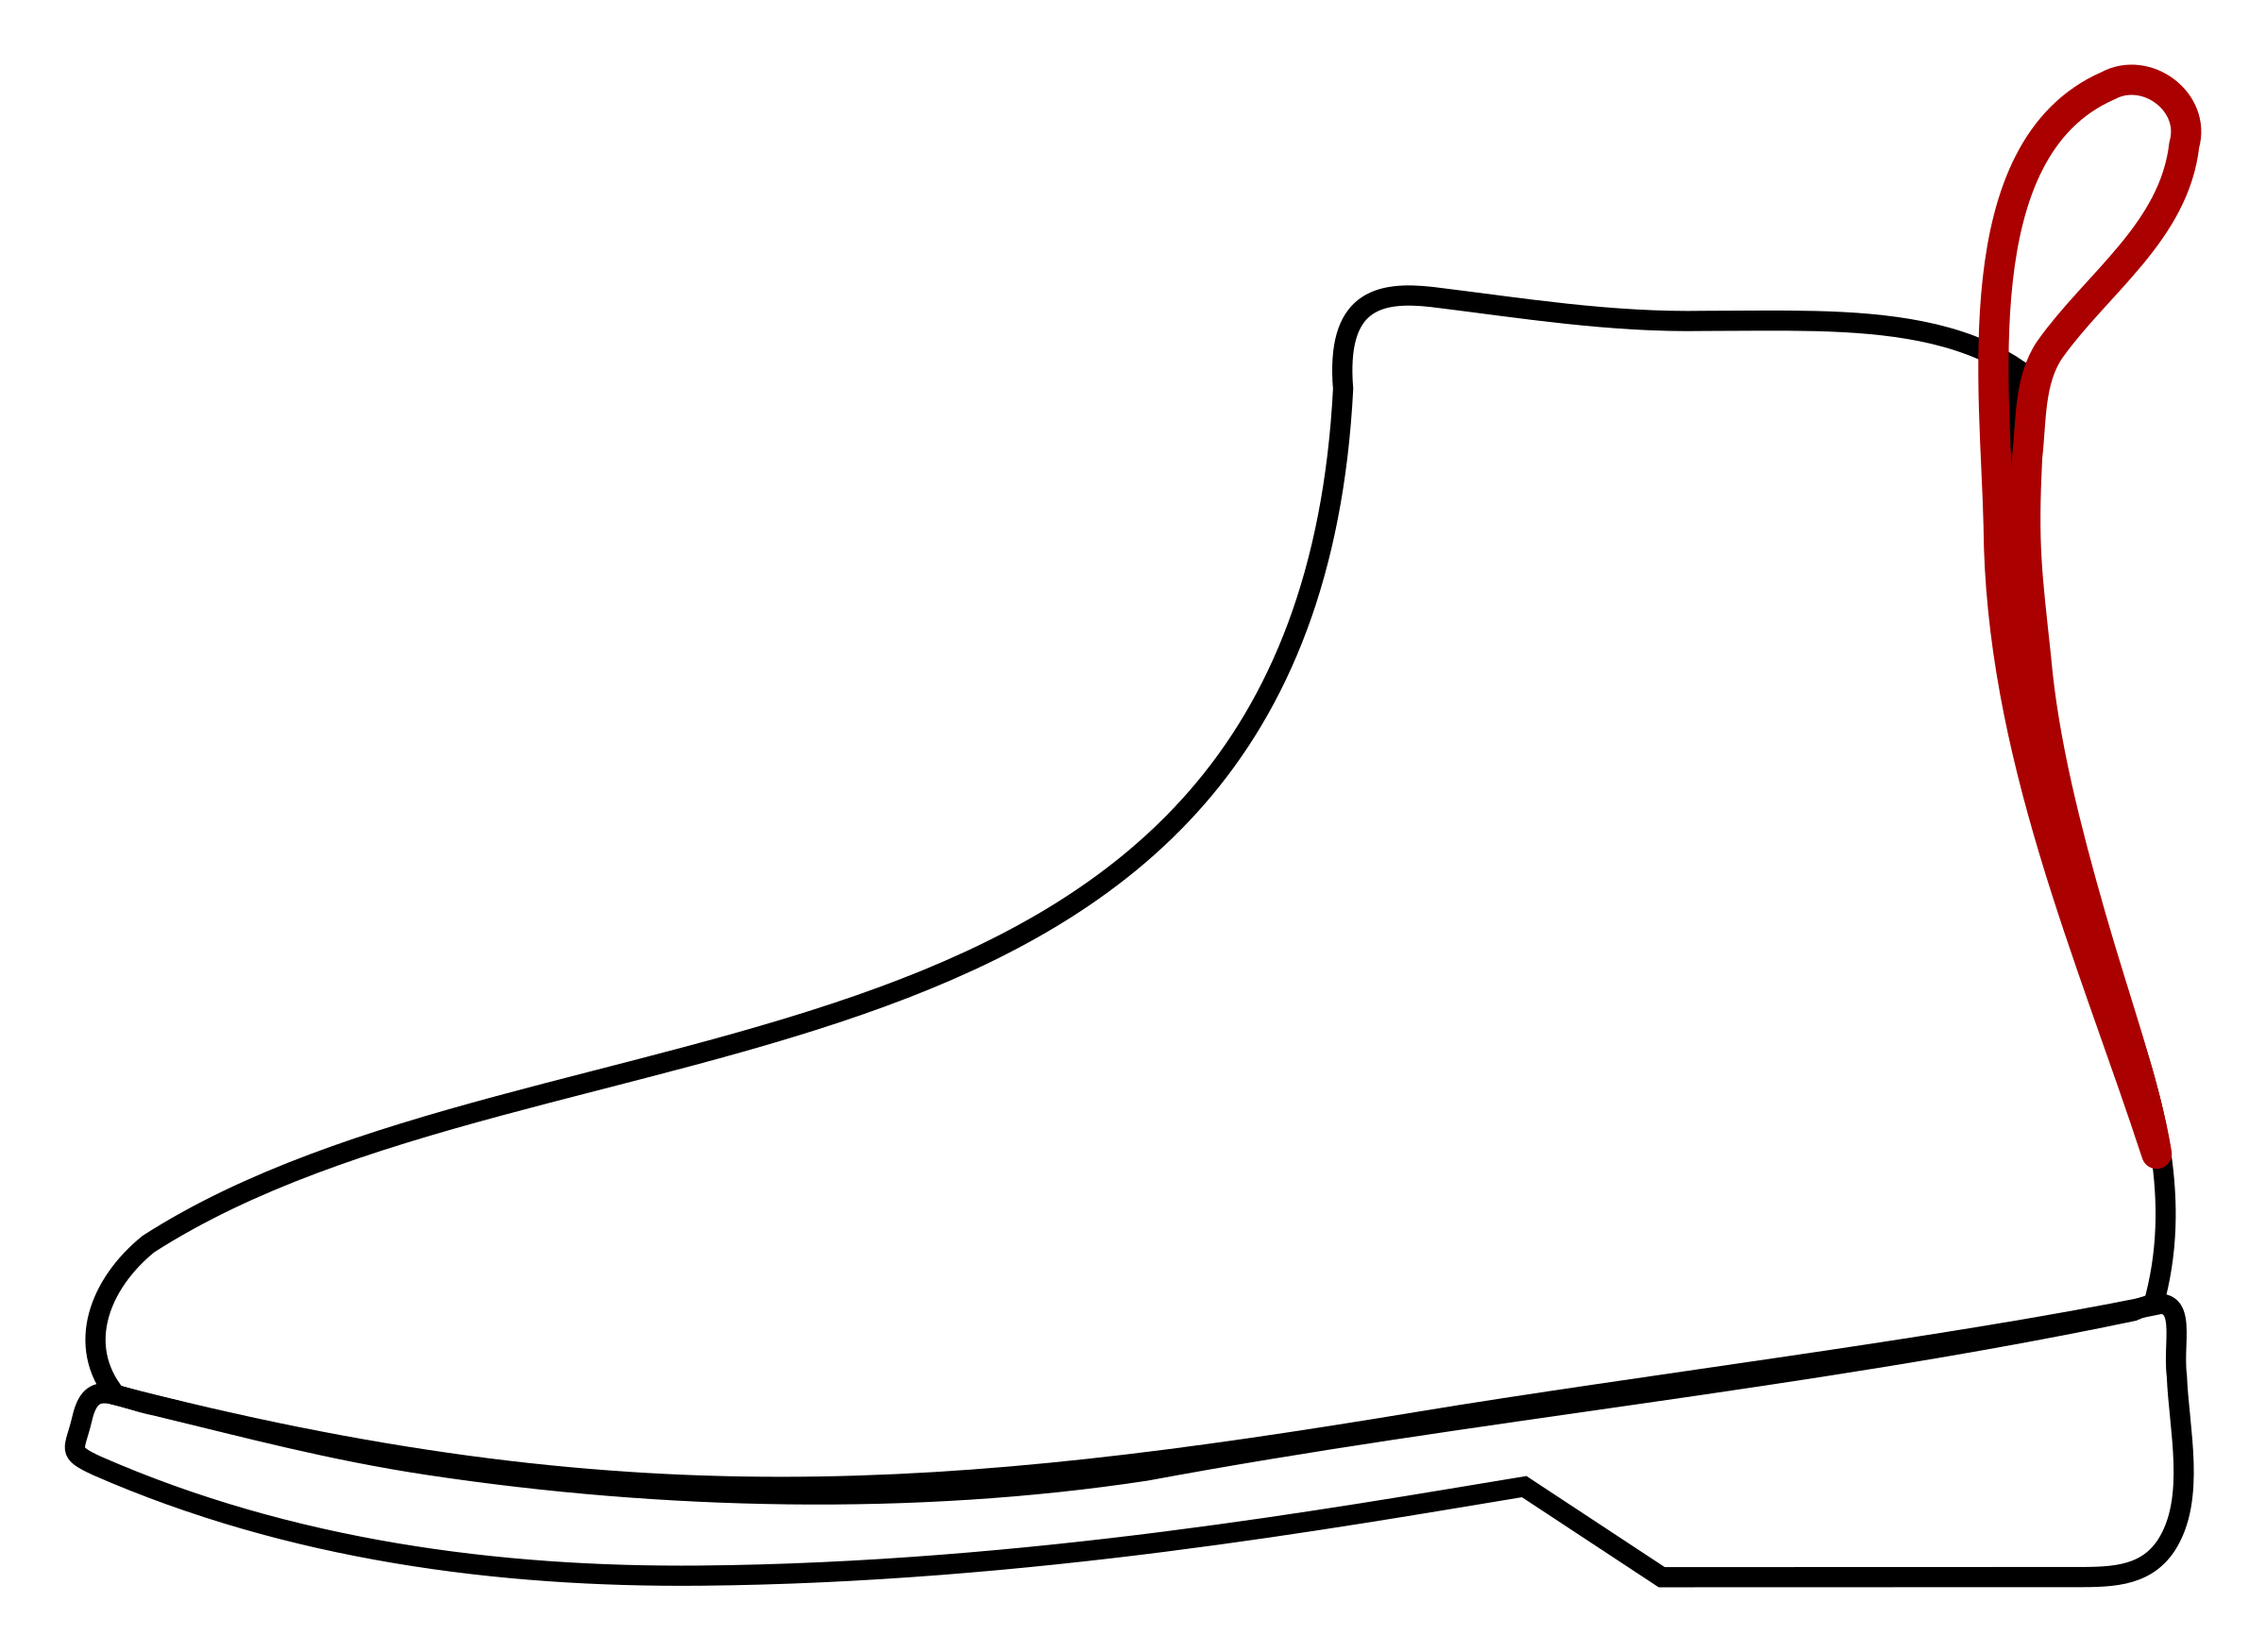 Leather Boot Vector Clipart Image